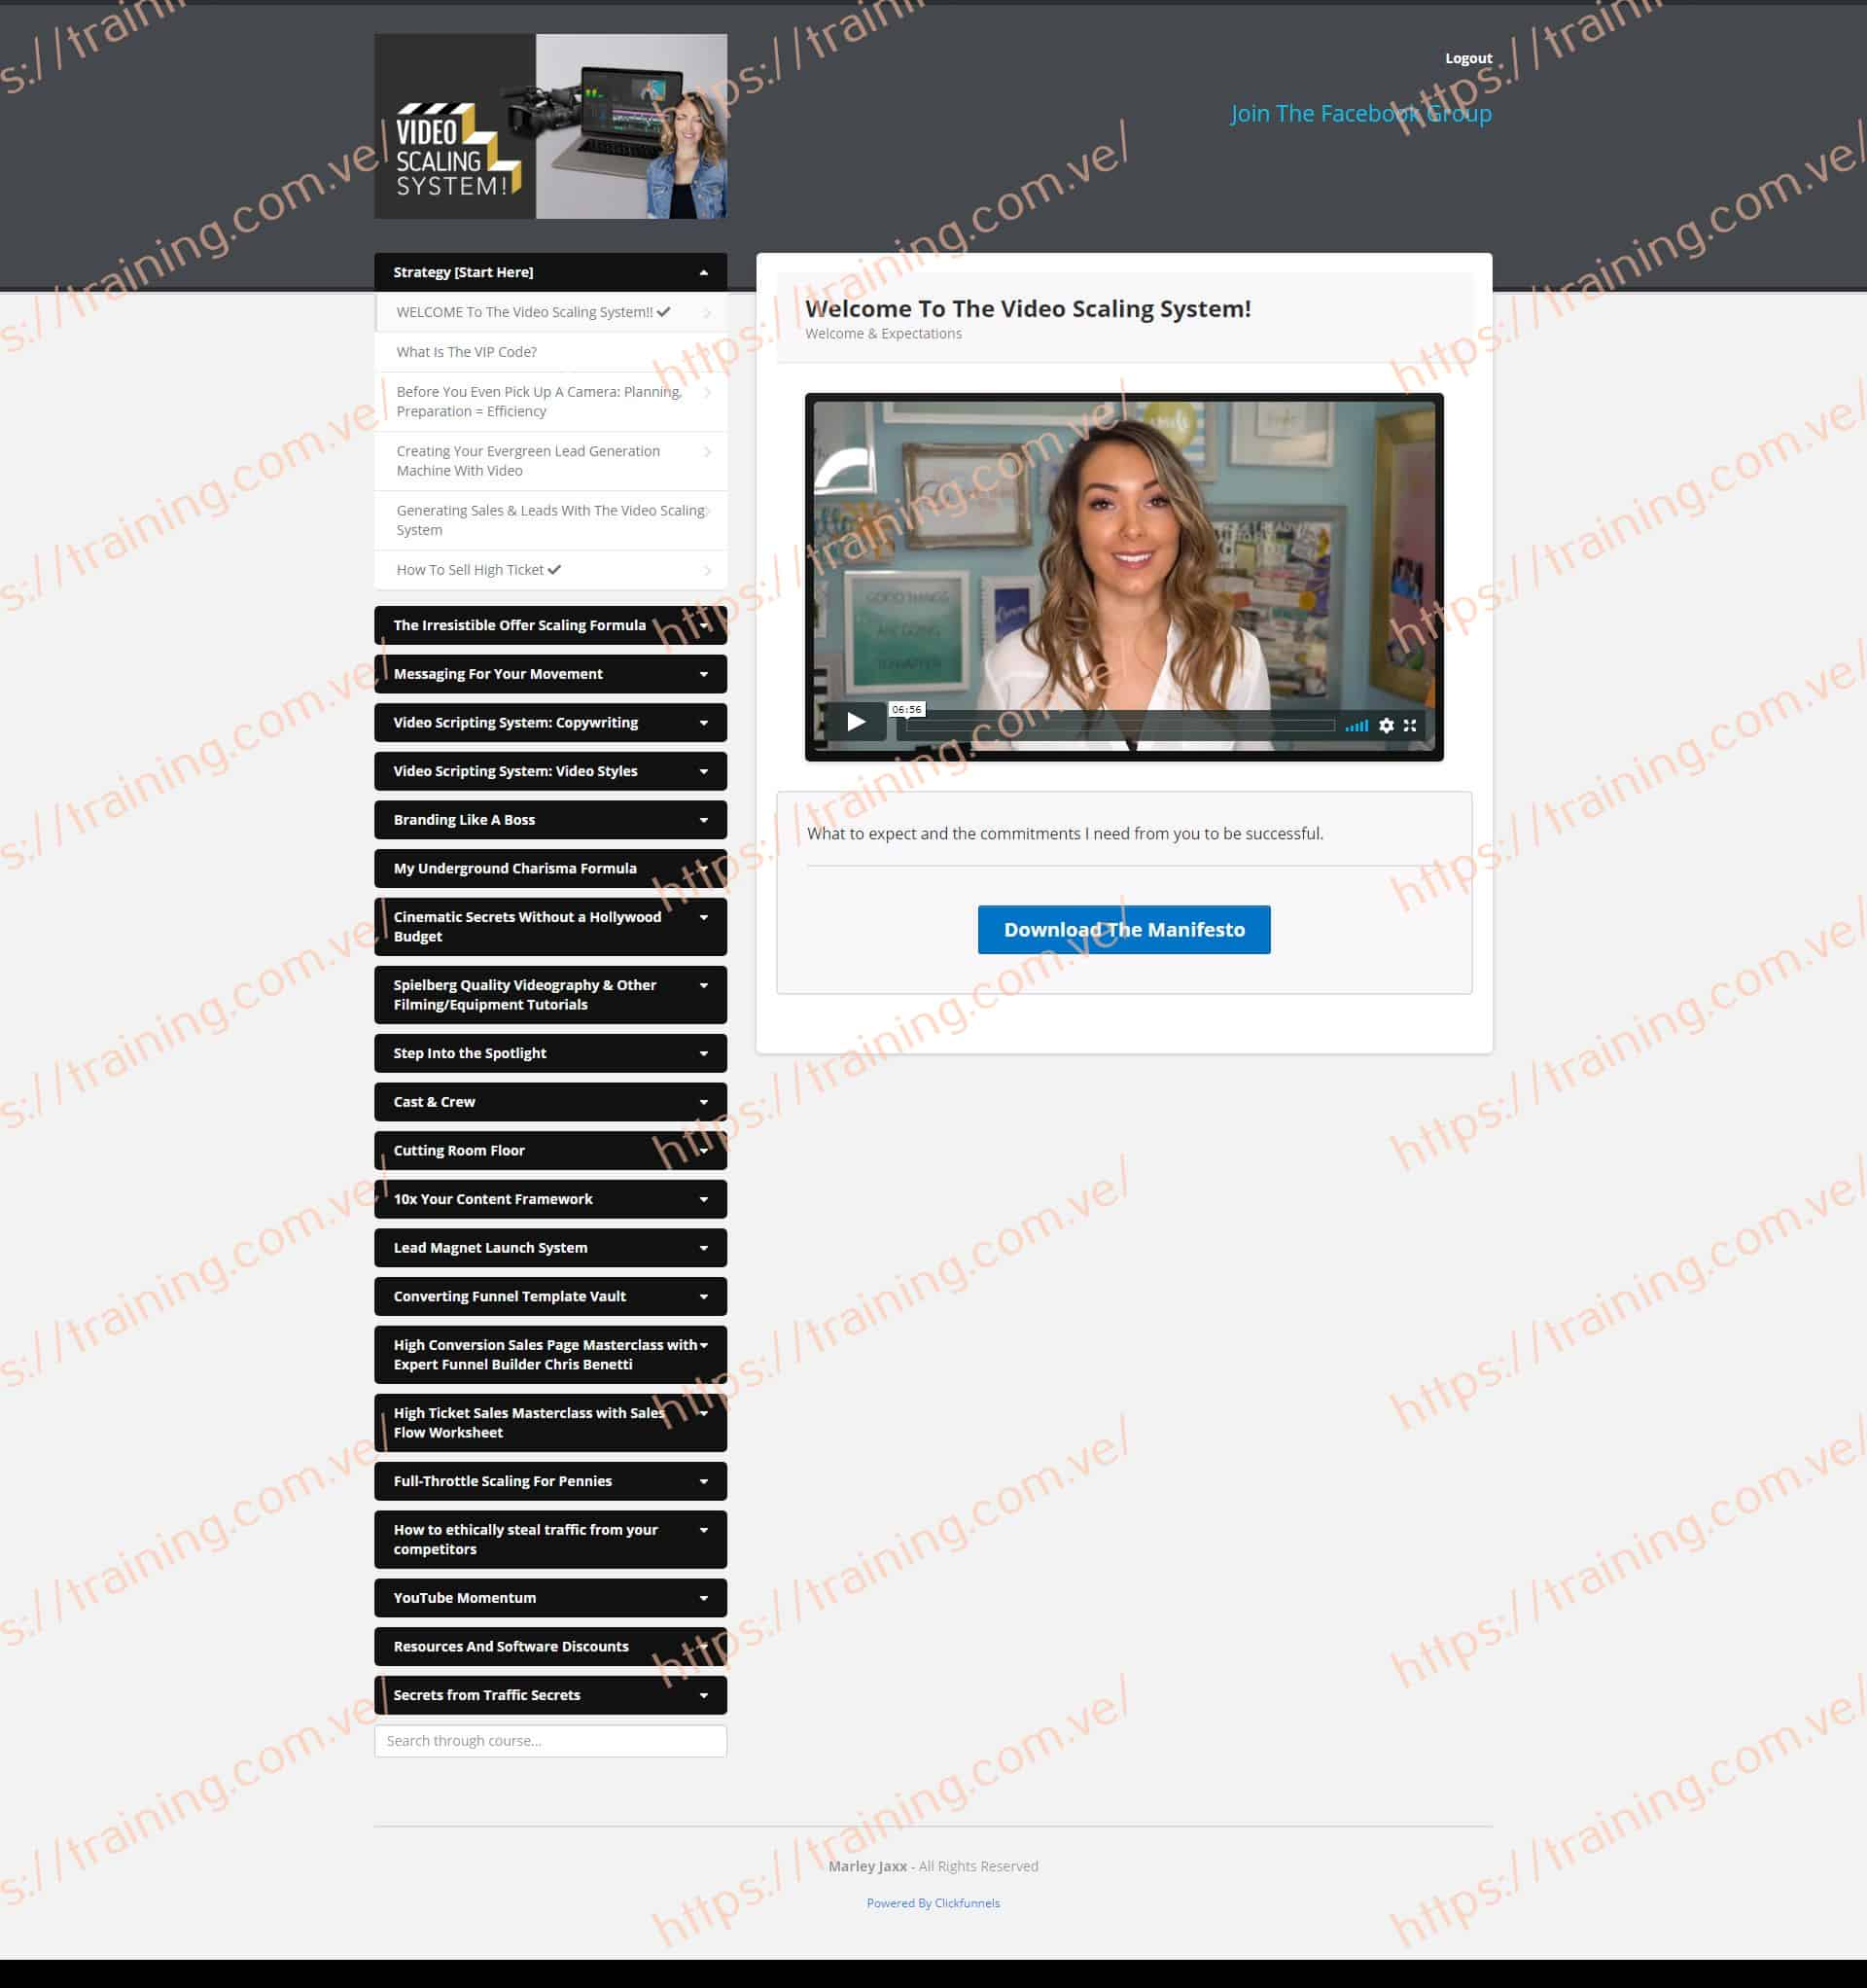 Video Scaling System by Marley Jaxx Download